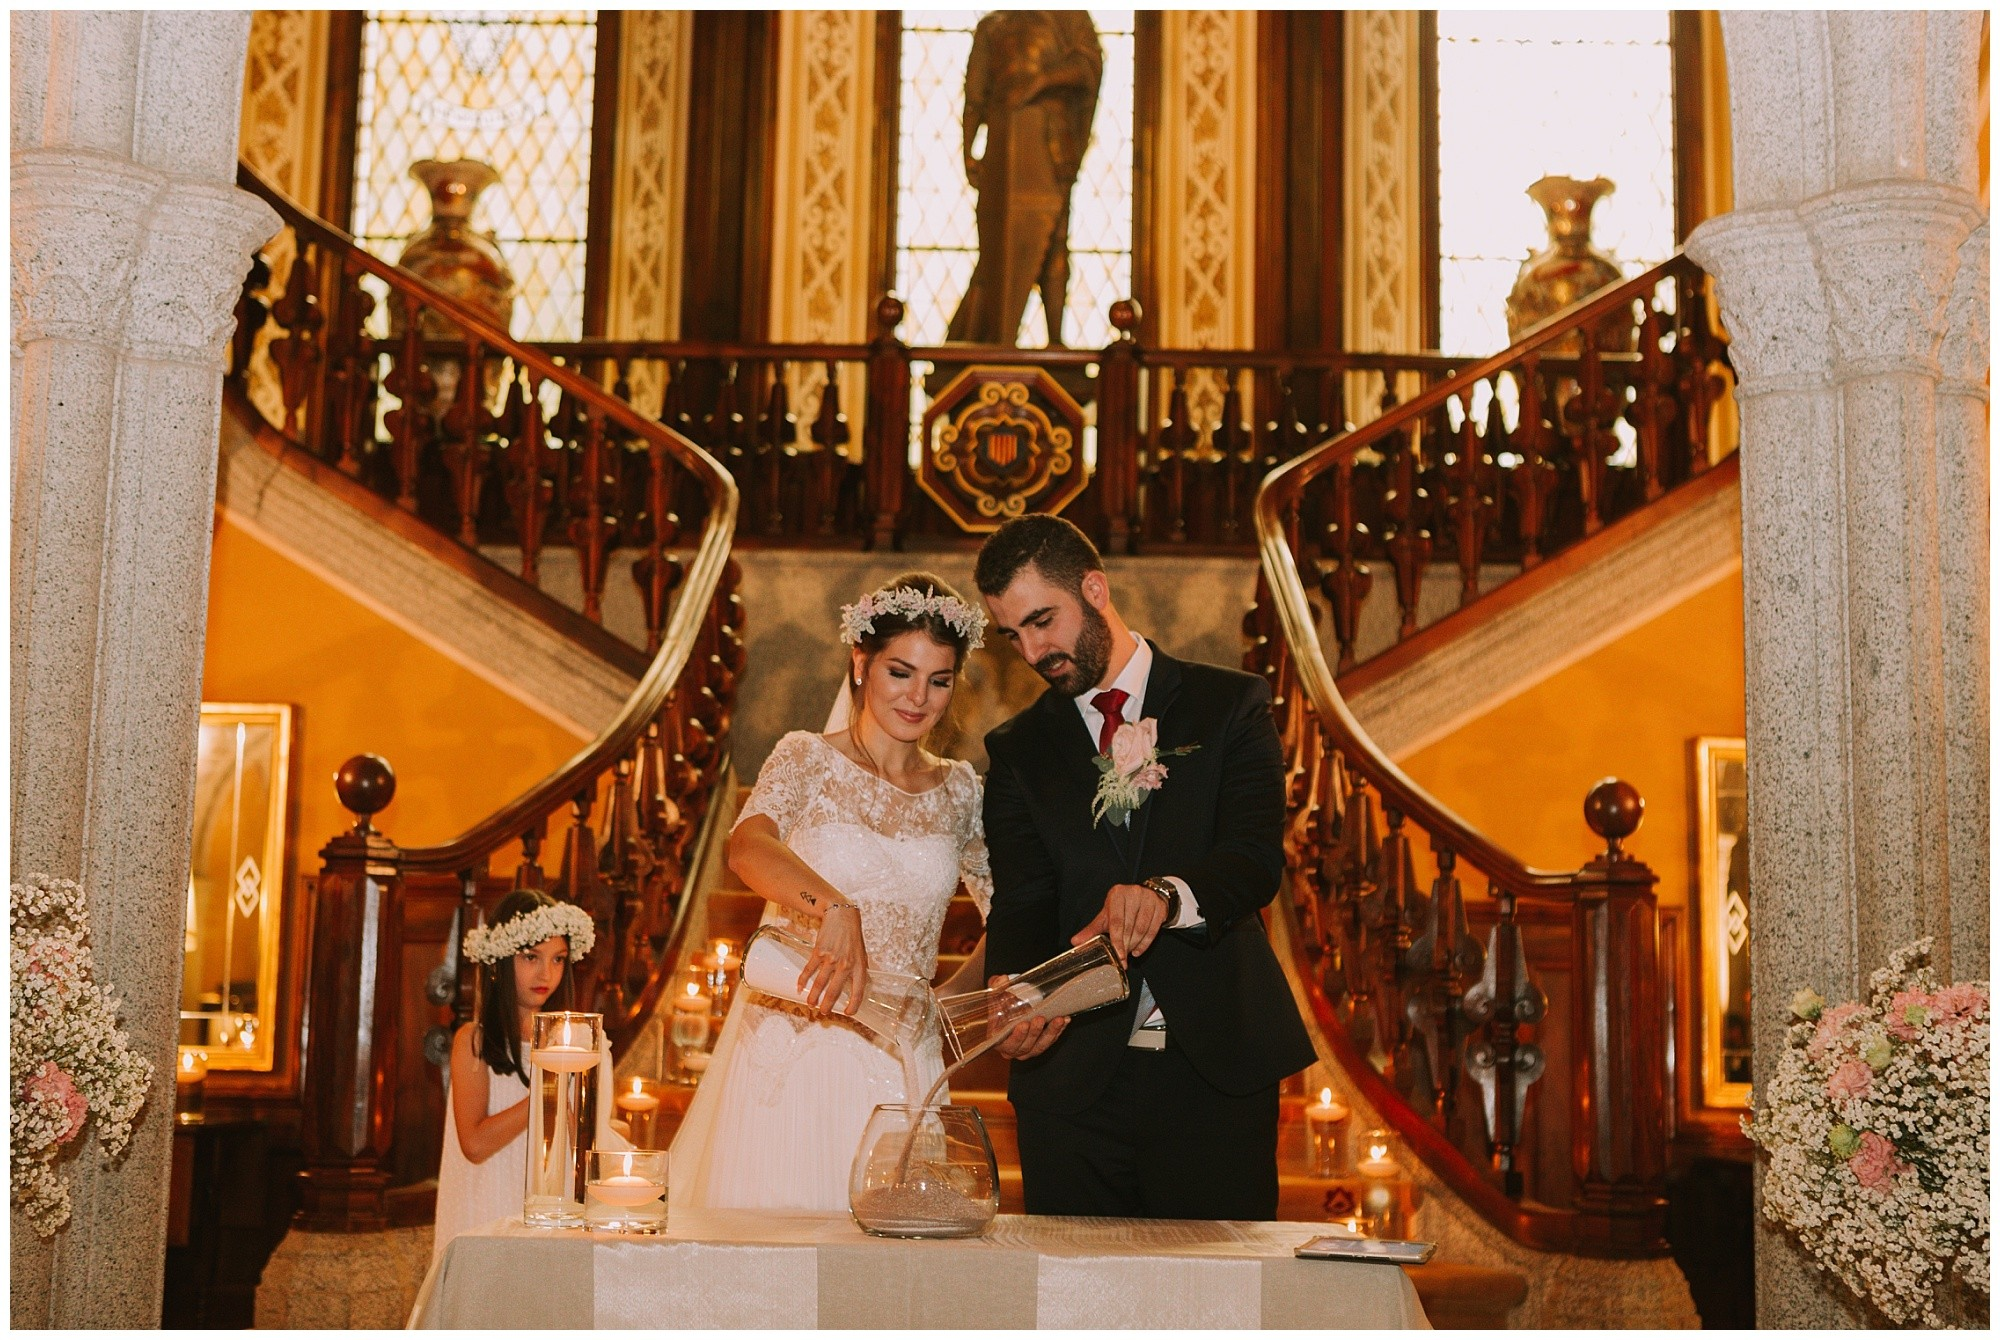 Kateryna-photos-photographe-boda-wedding-barcelona-bell-reco-catalunya_wedding-ceremony-in-a palace-sand